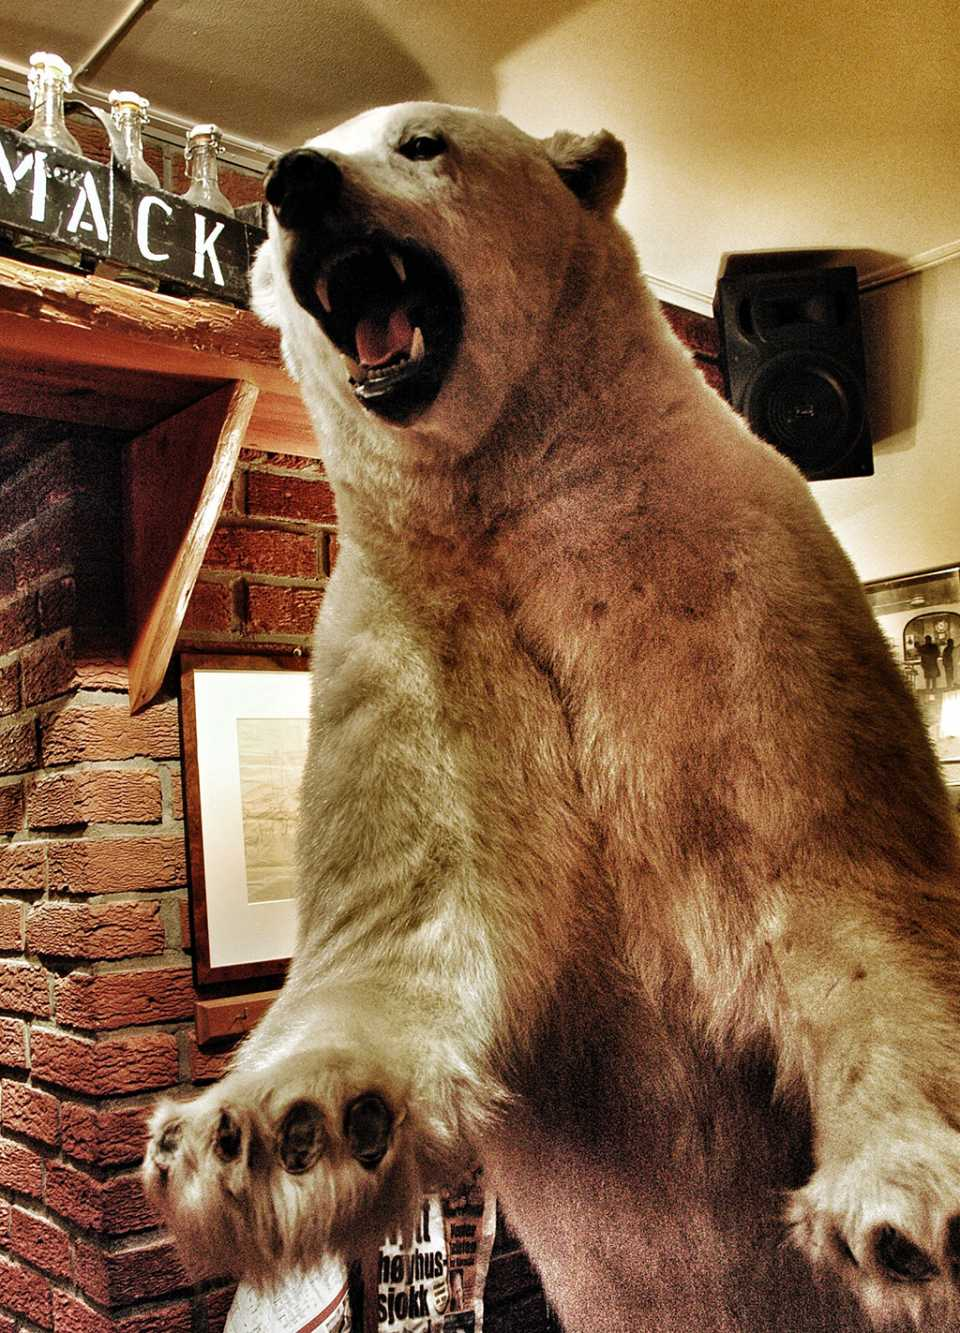 A polar bear greets you at Mack's Brewery. Better here than at the golf course.